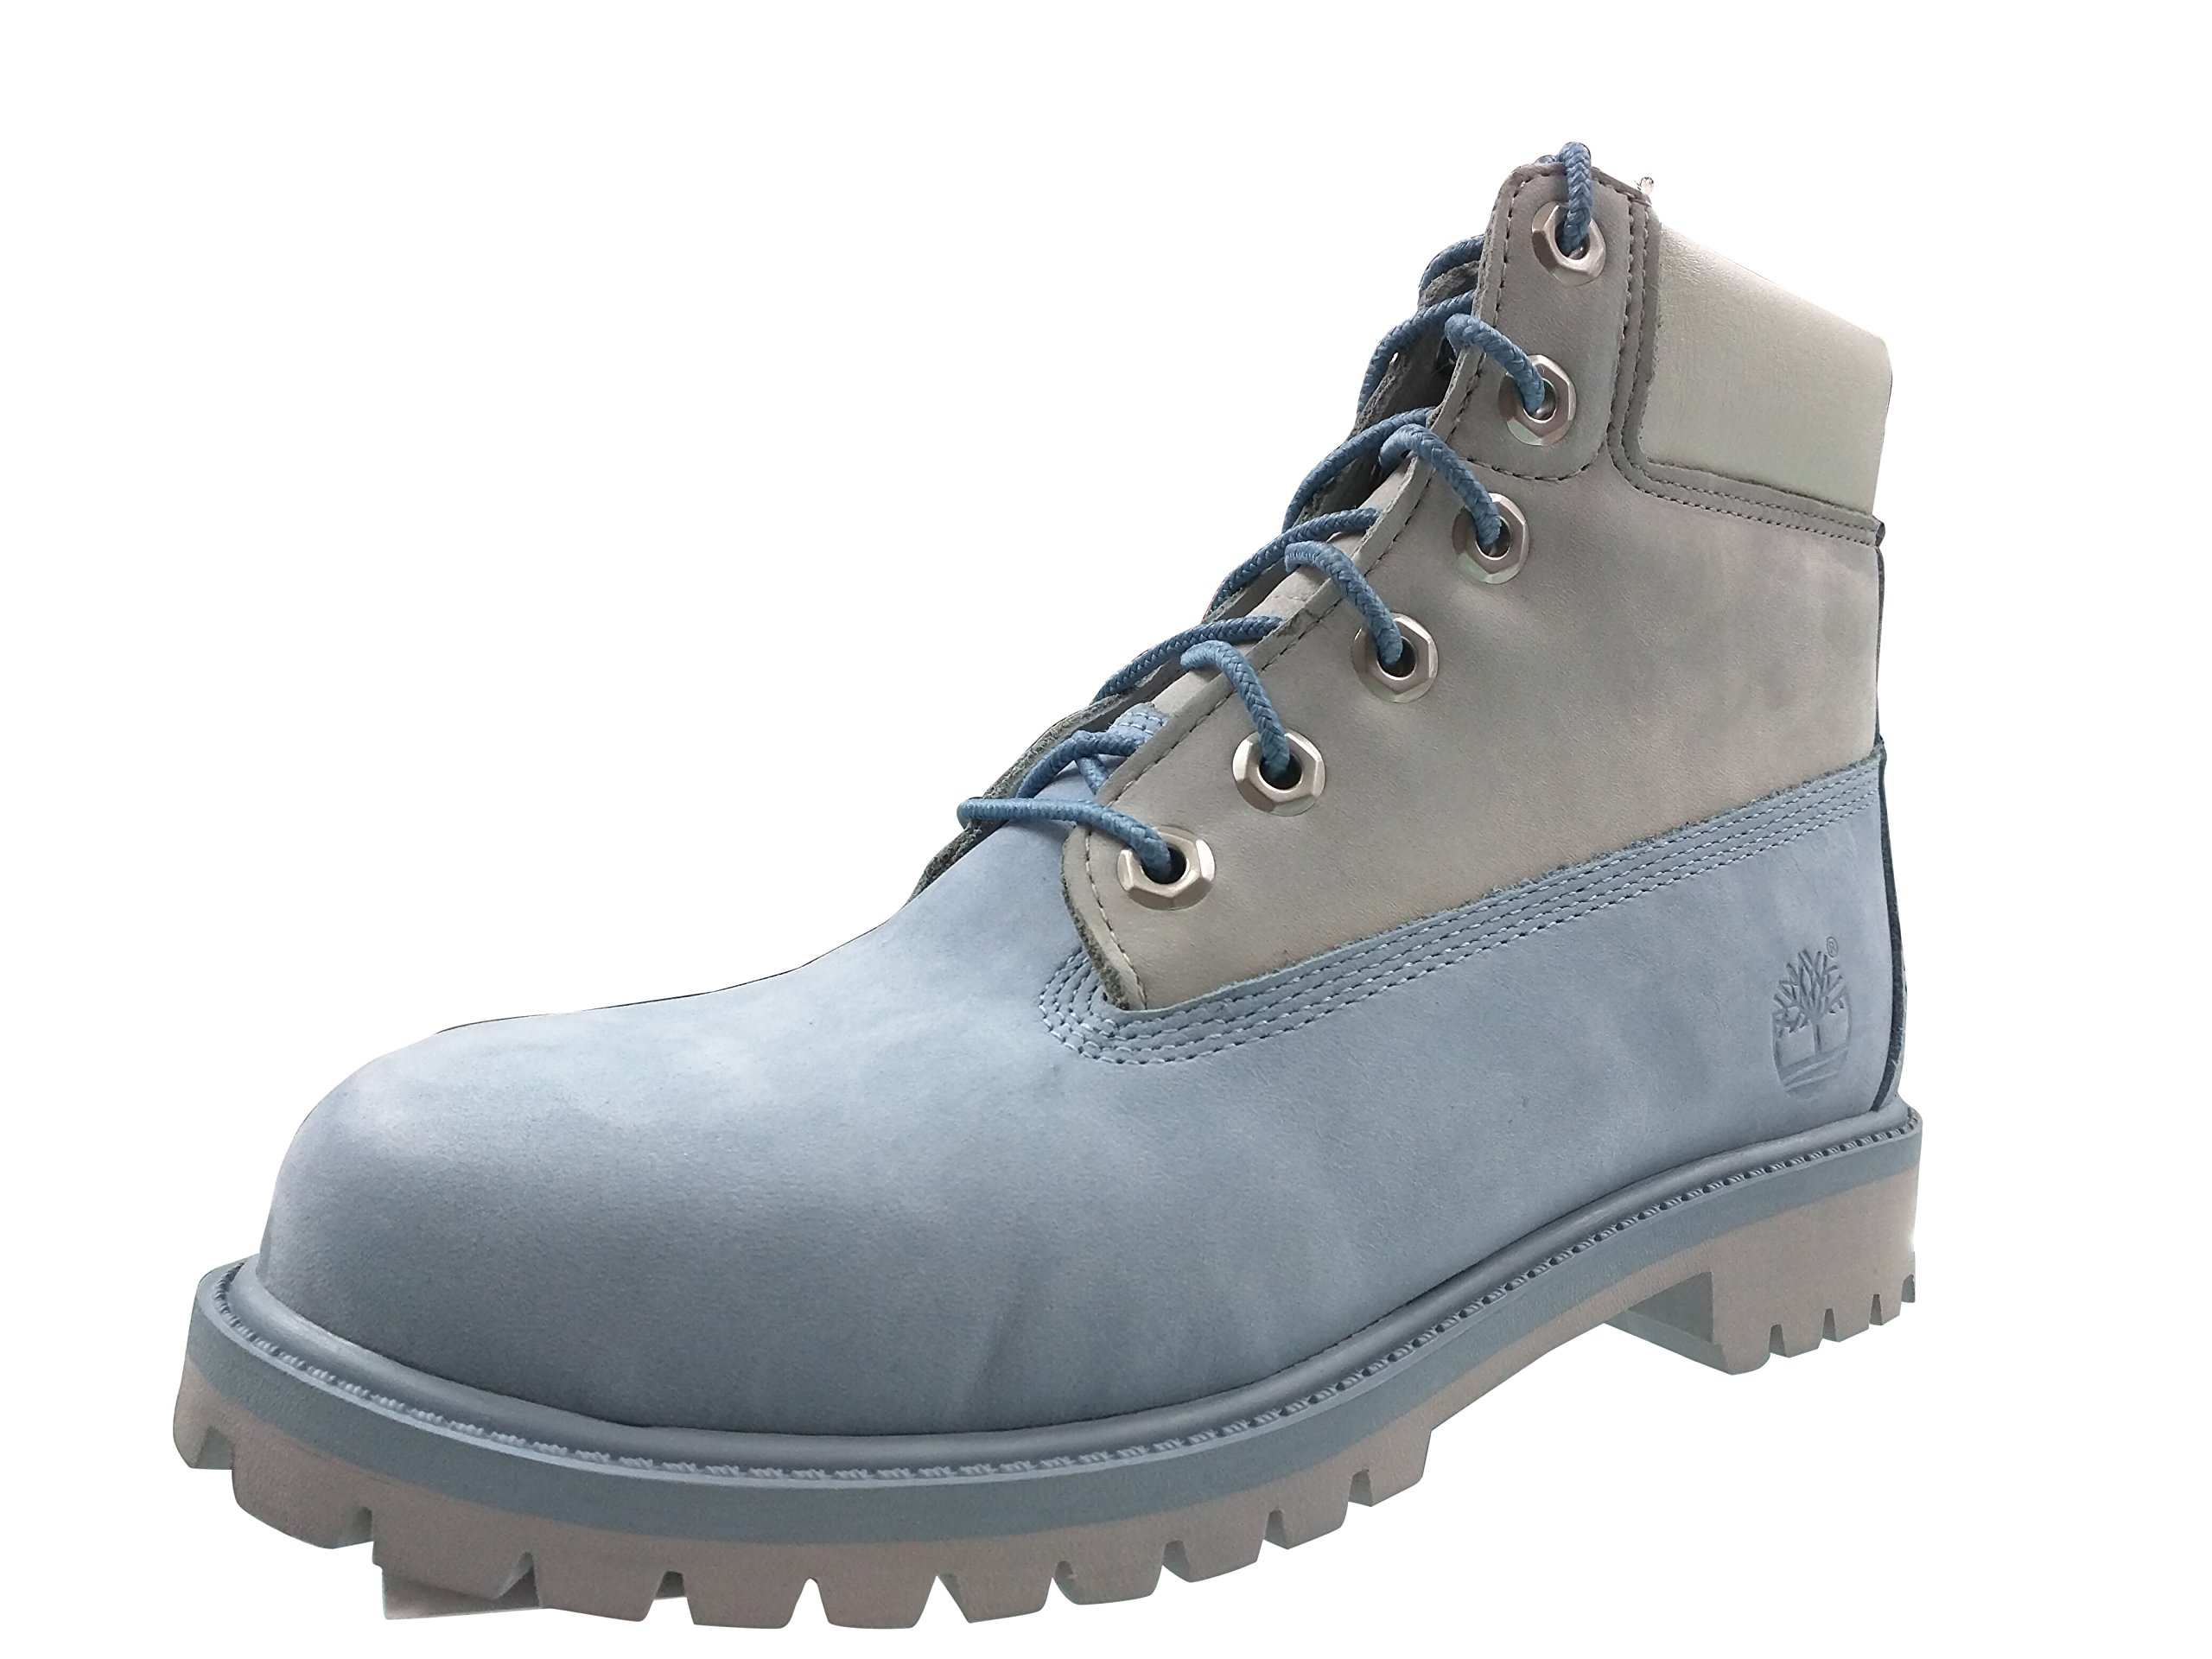 Big Kids Timberland 6 In. Classic Premium Boots (6 D(M) US, Blue/Grey)